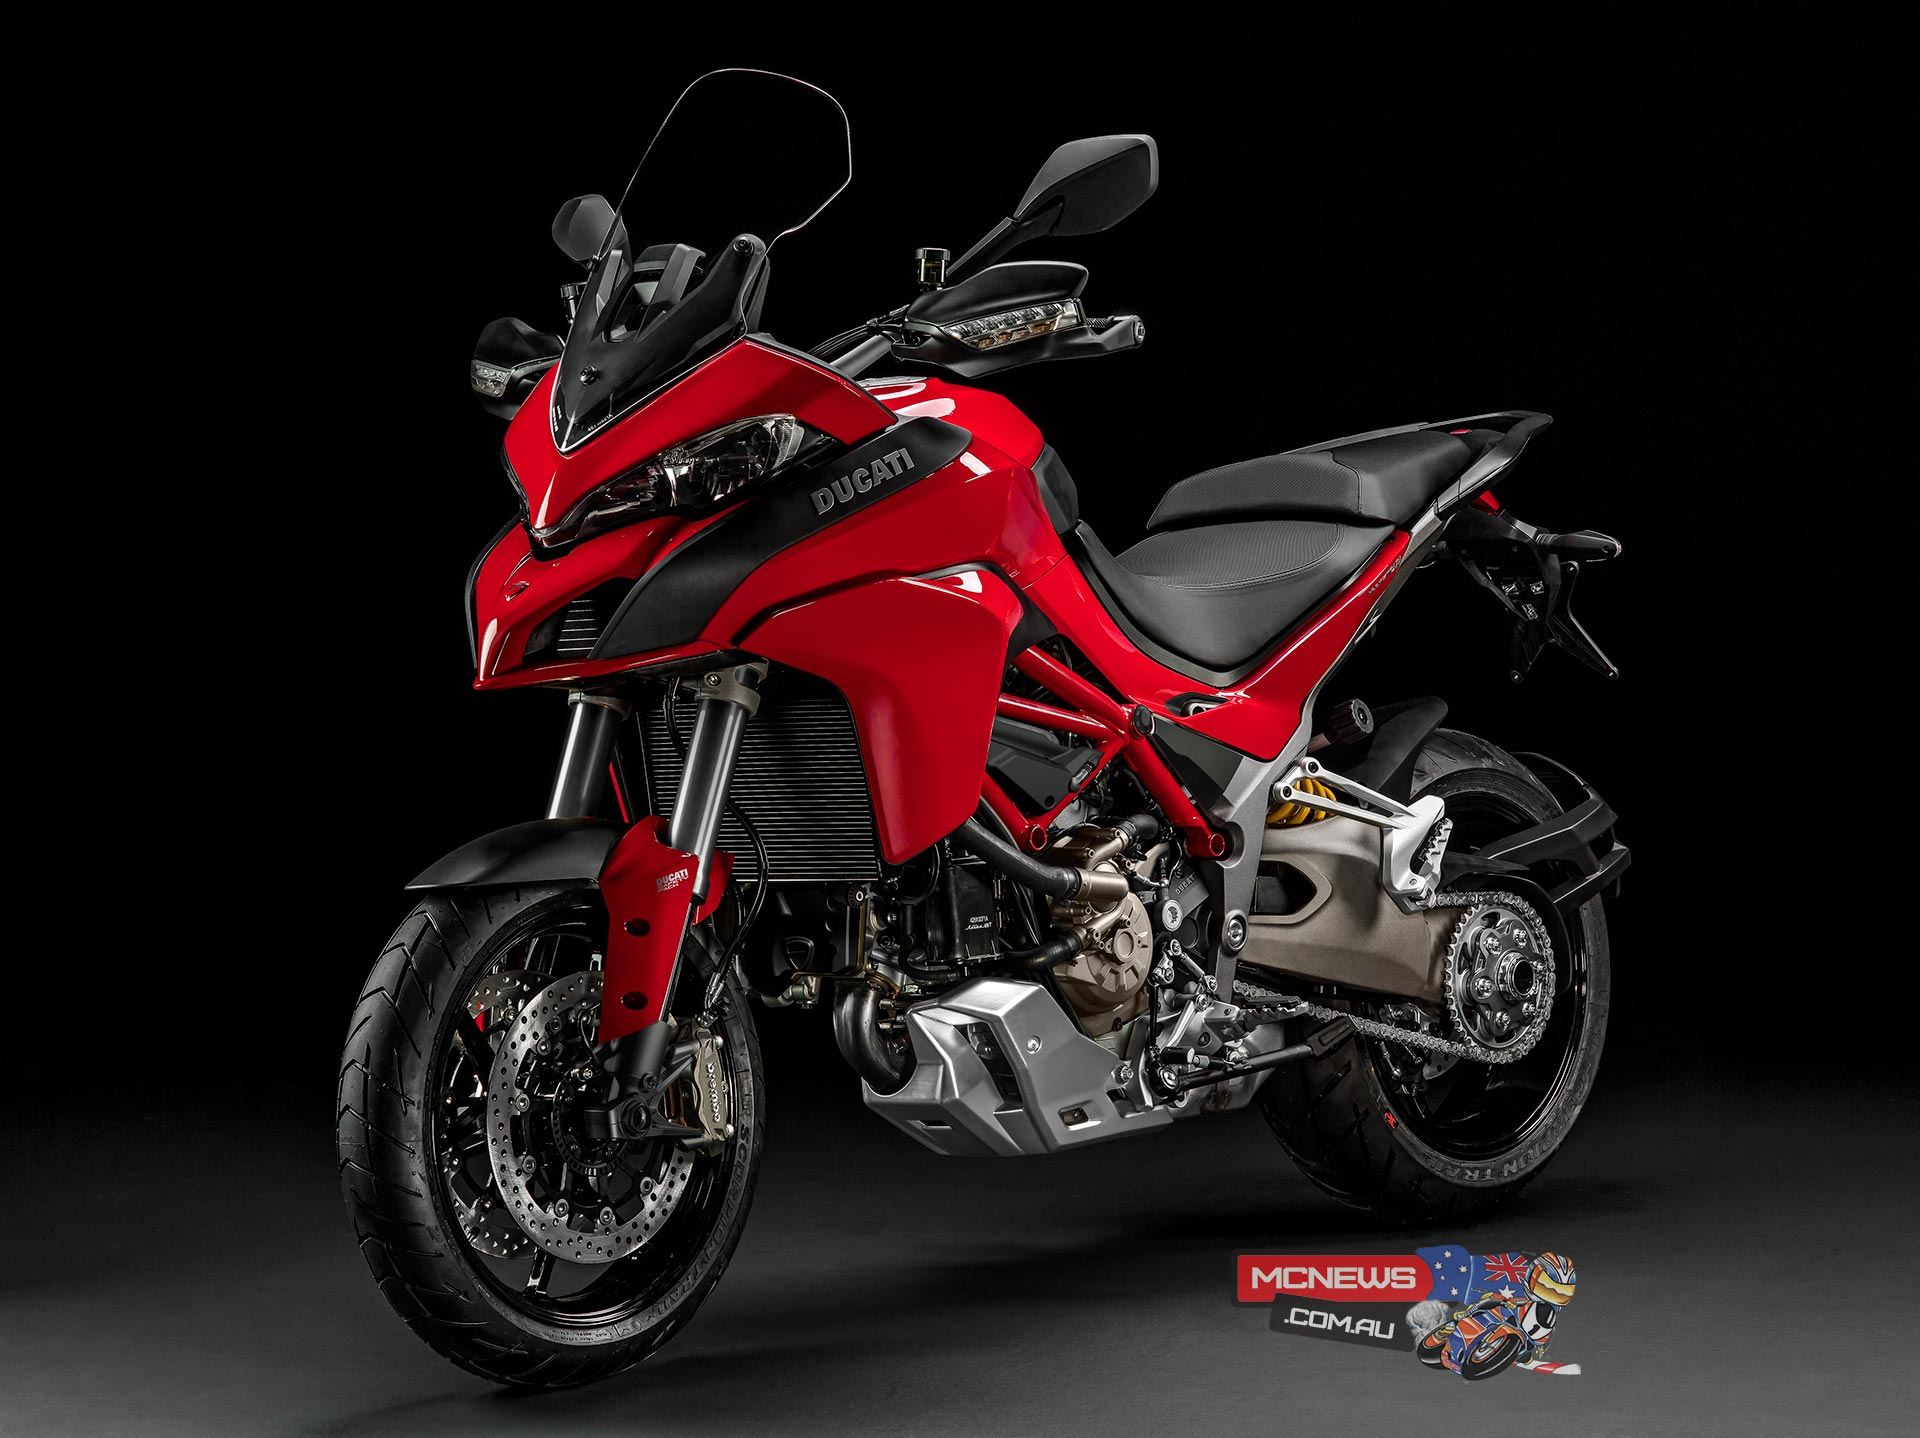 Ducati Multistrada 1200 2015 wallpapers #13188